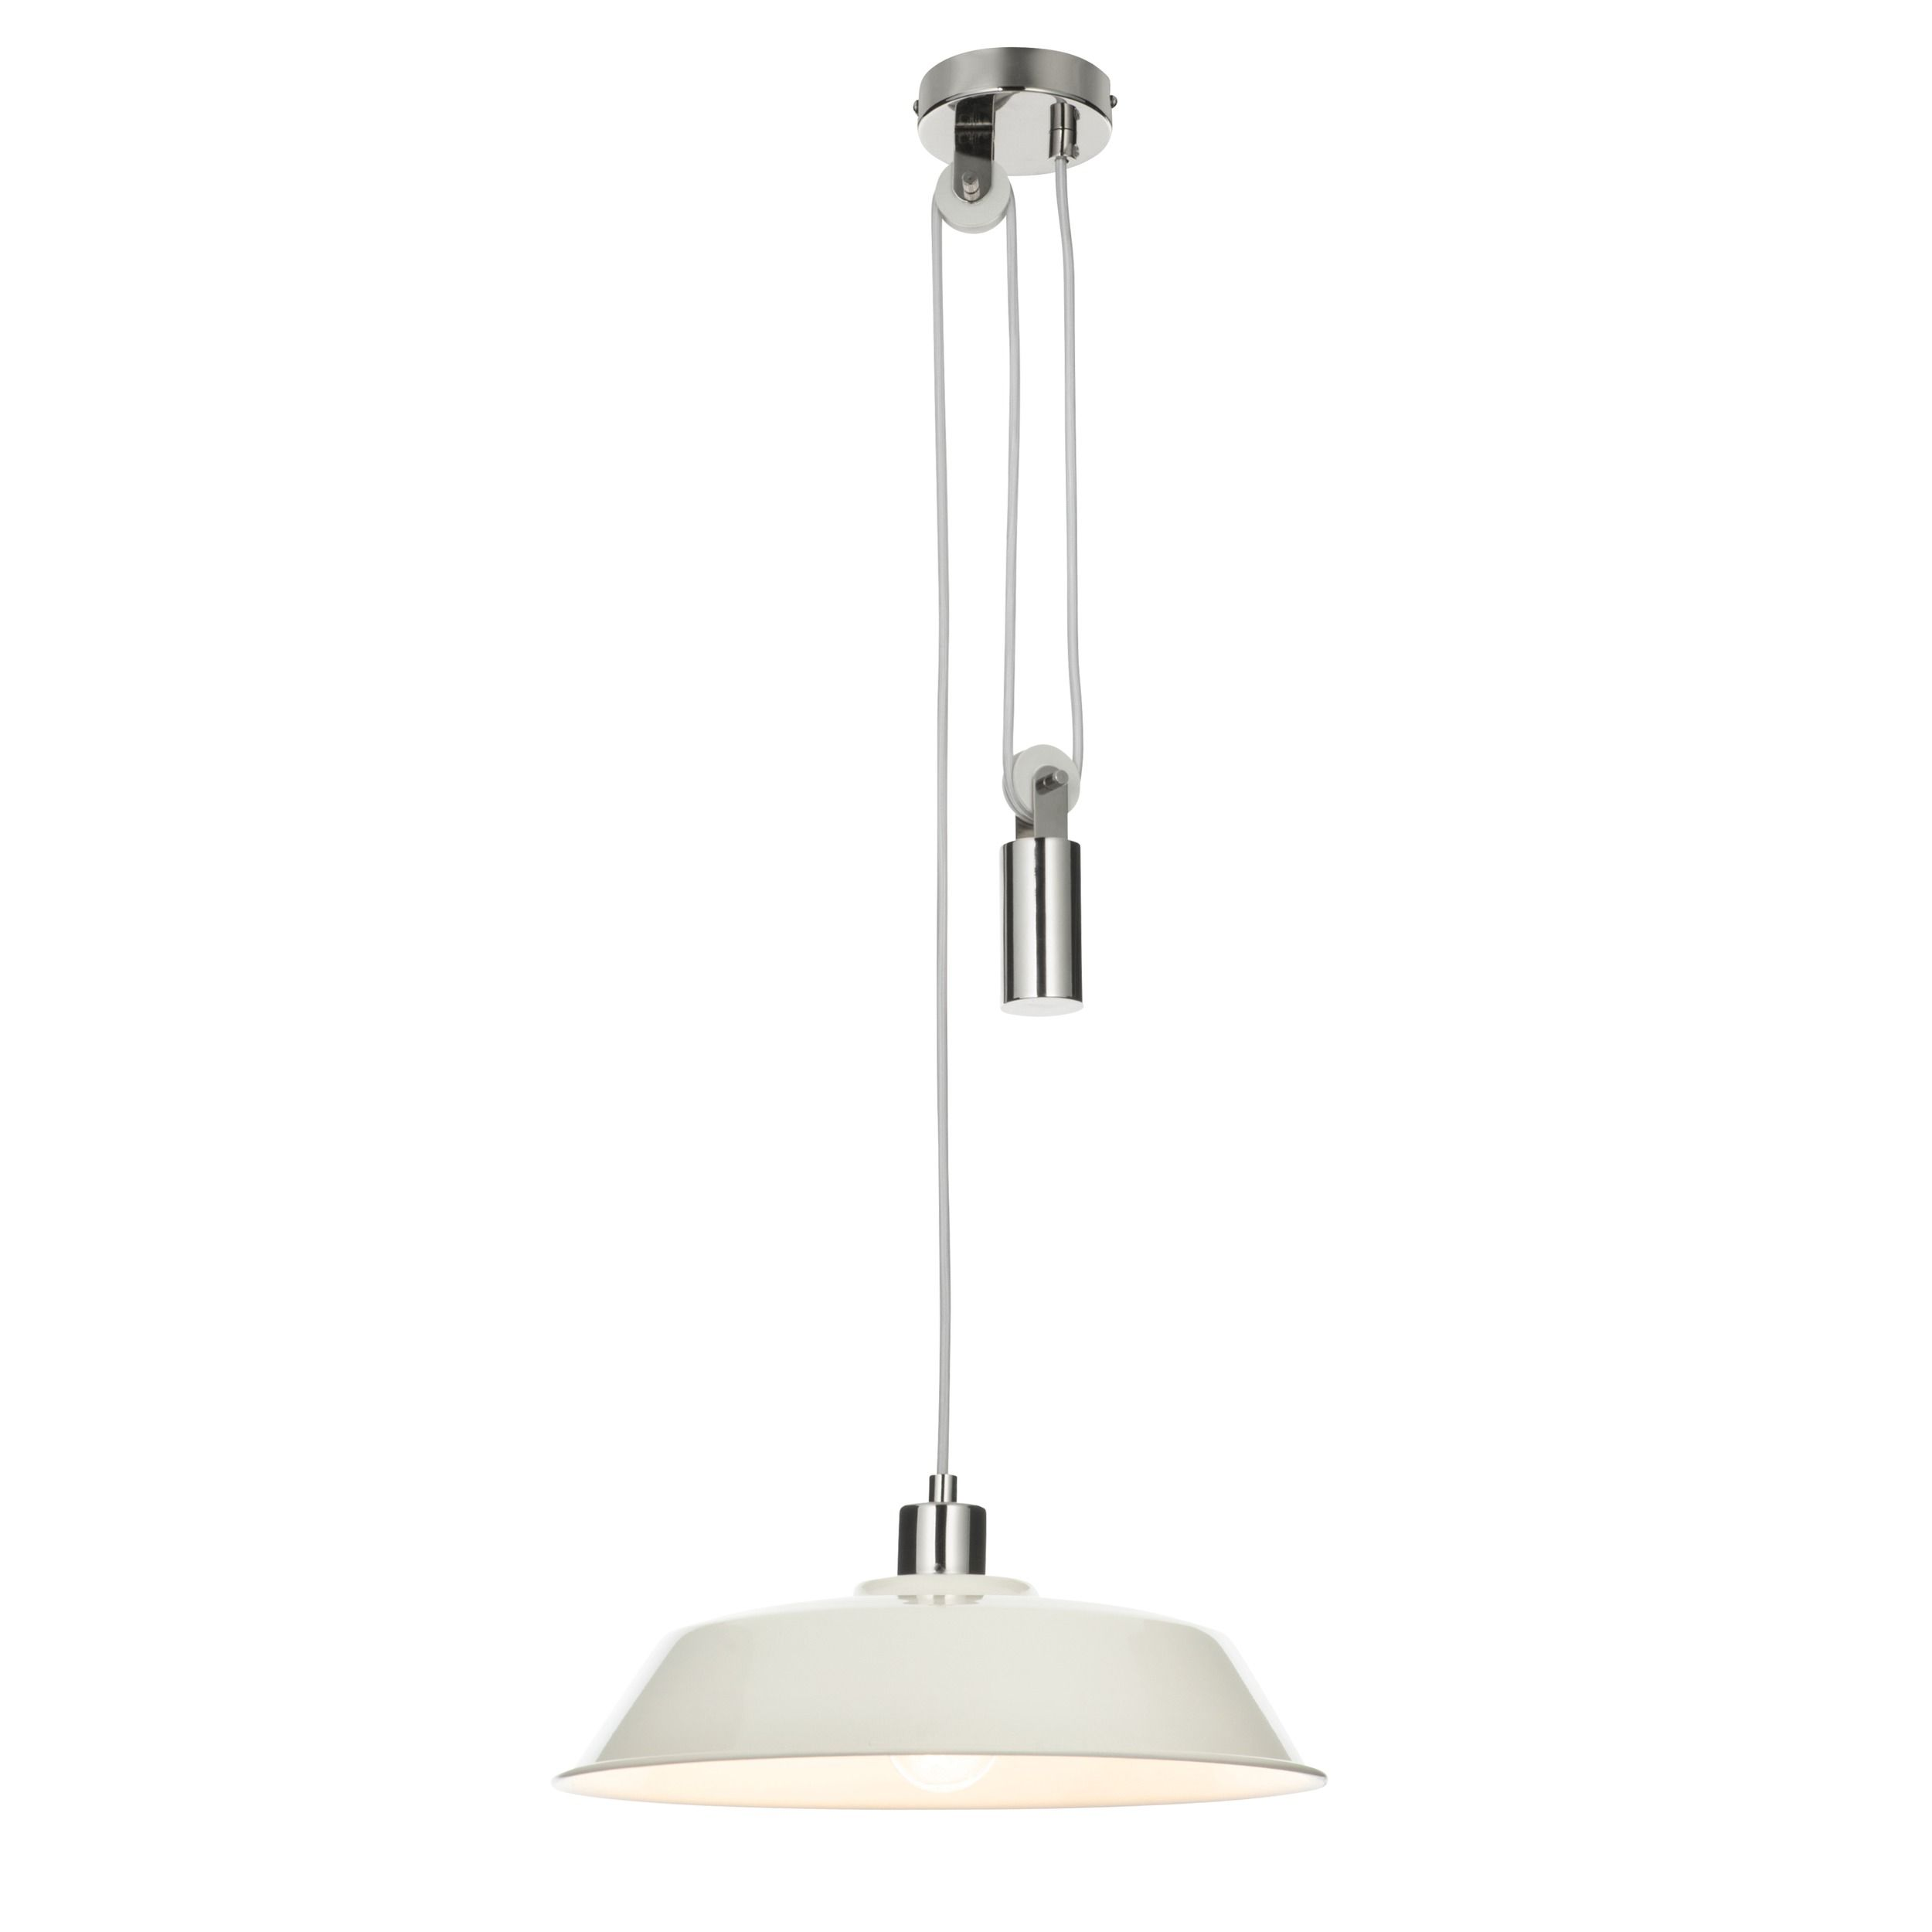 Laura ashley kirkby rise fall pendant light laura ashley laura ashley kirkby rise fall pendant light mozeypictures Images